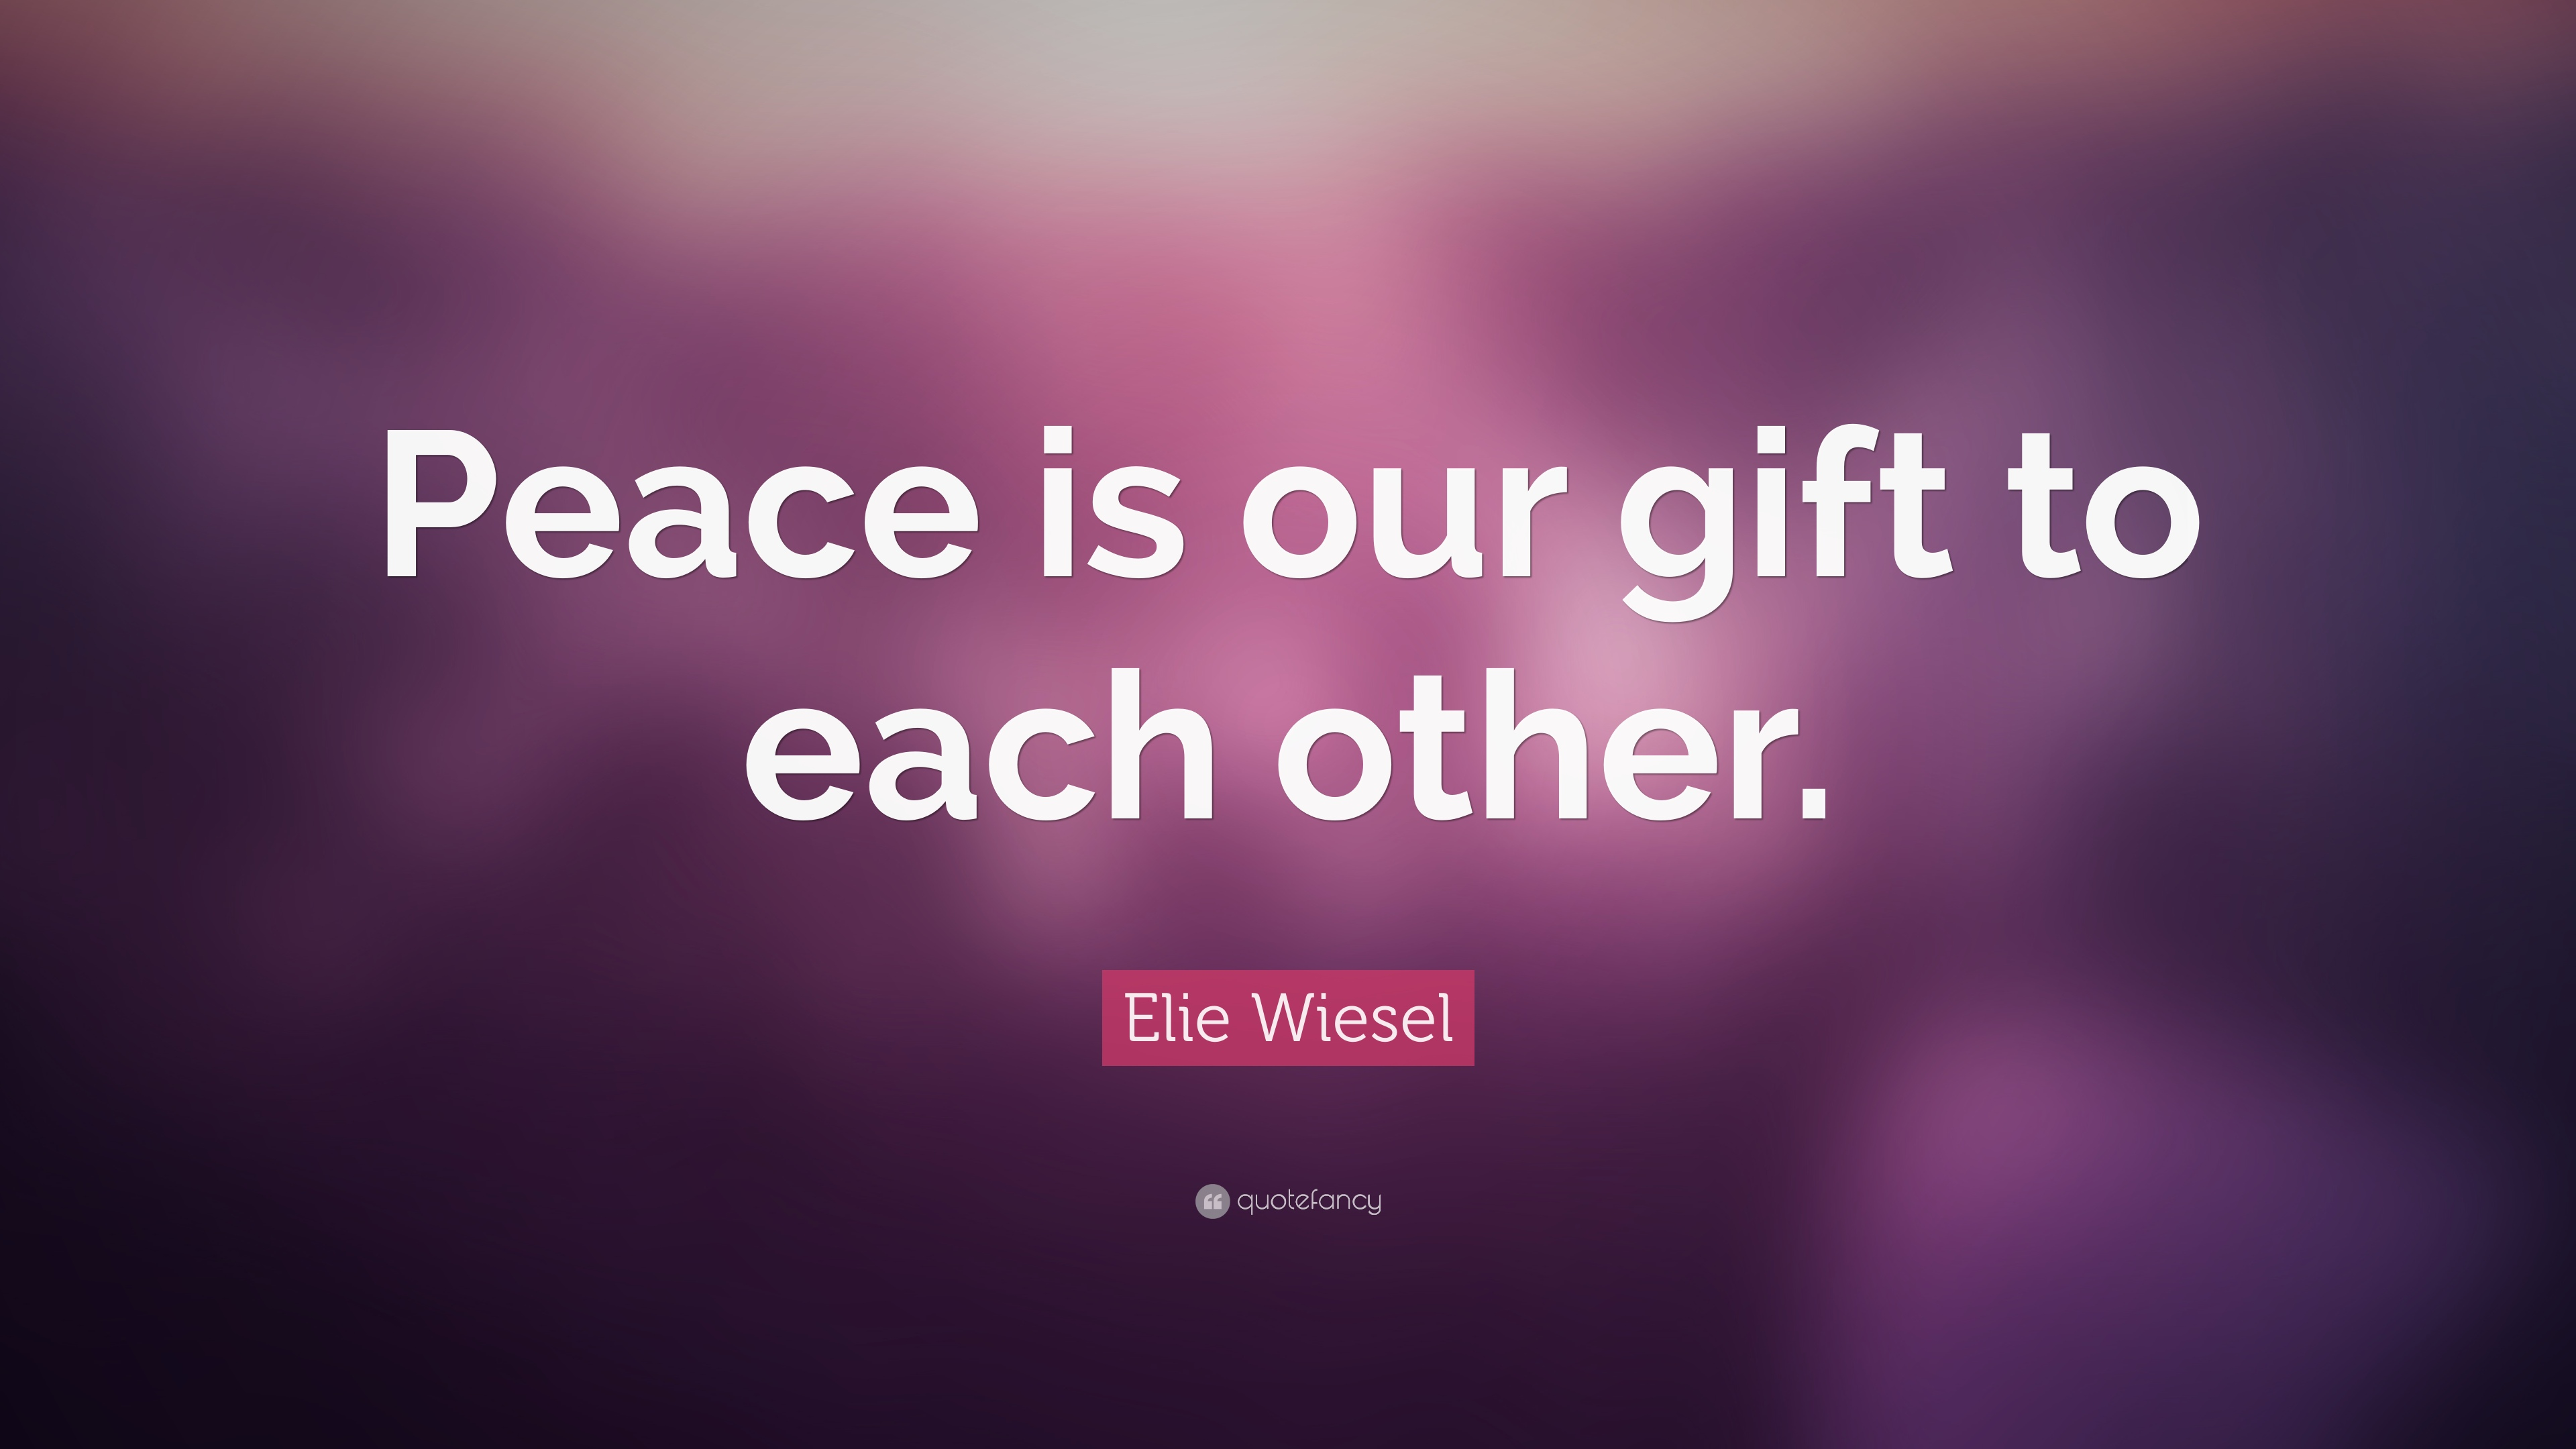 Peaceful Quotes Peace Quotes 40 Wallpapers  Quotefancy